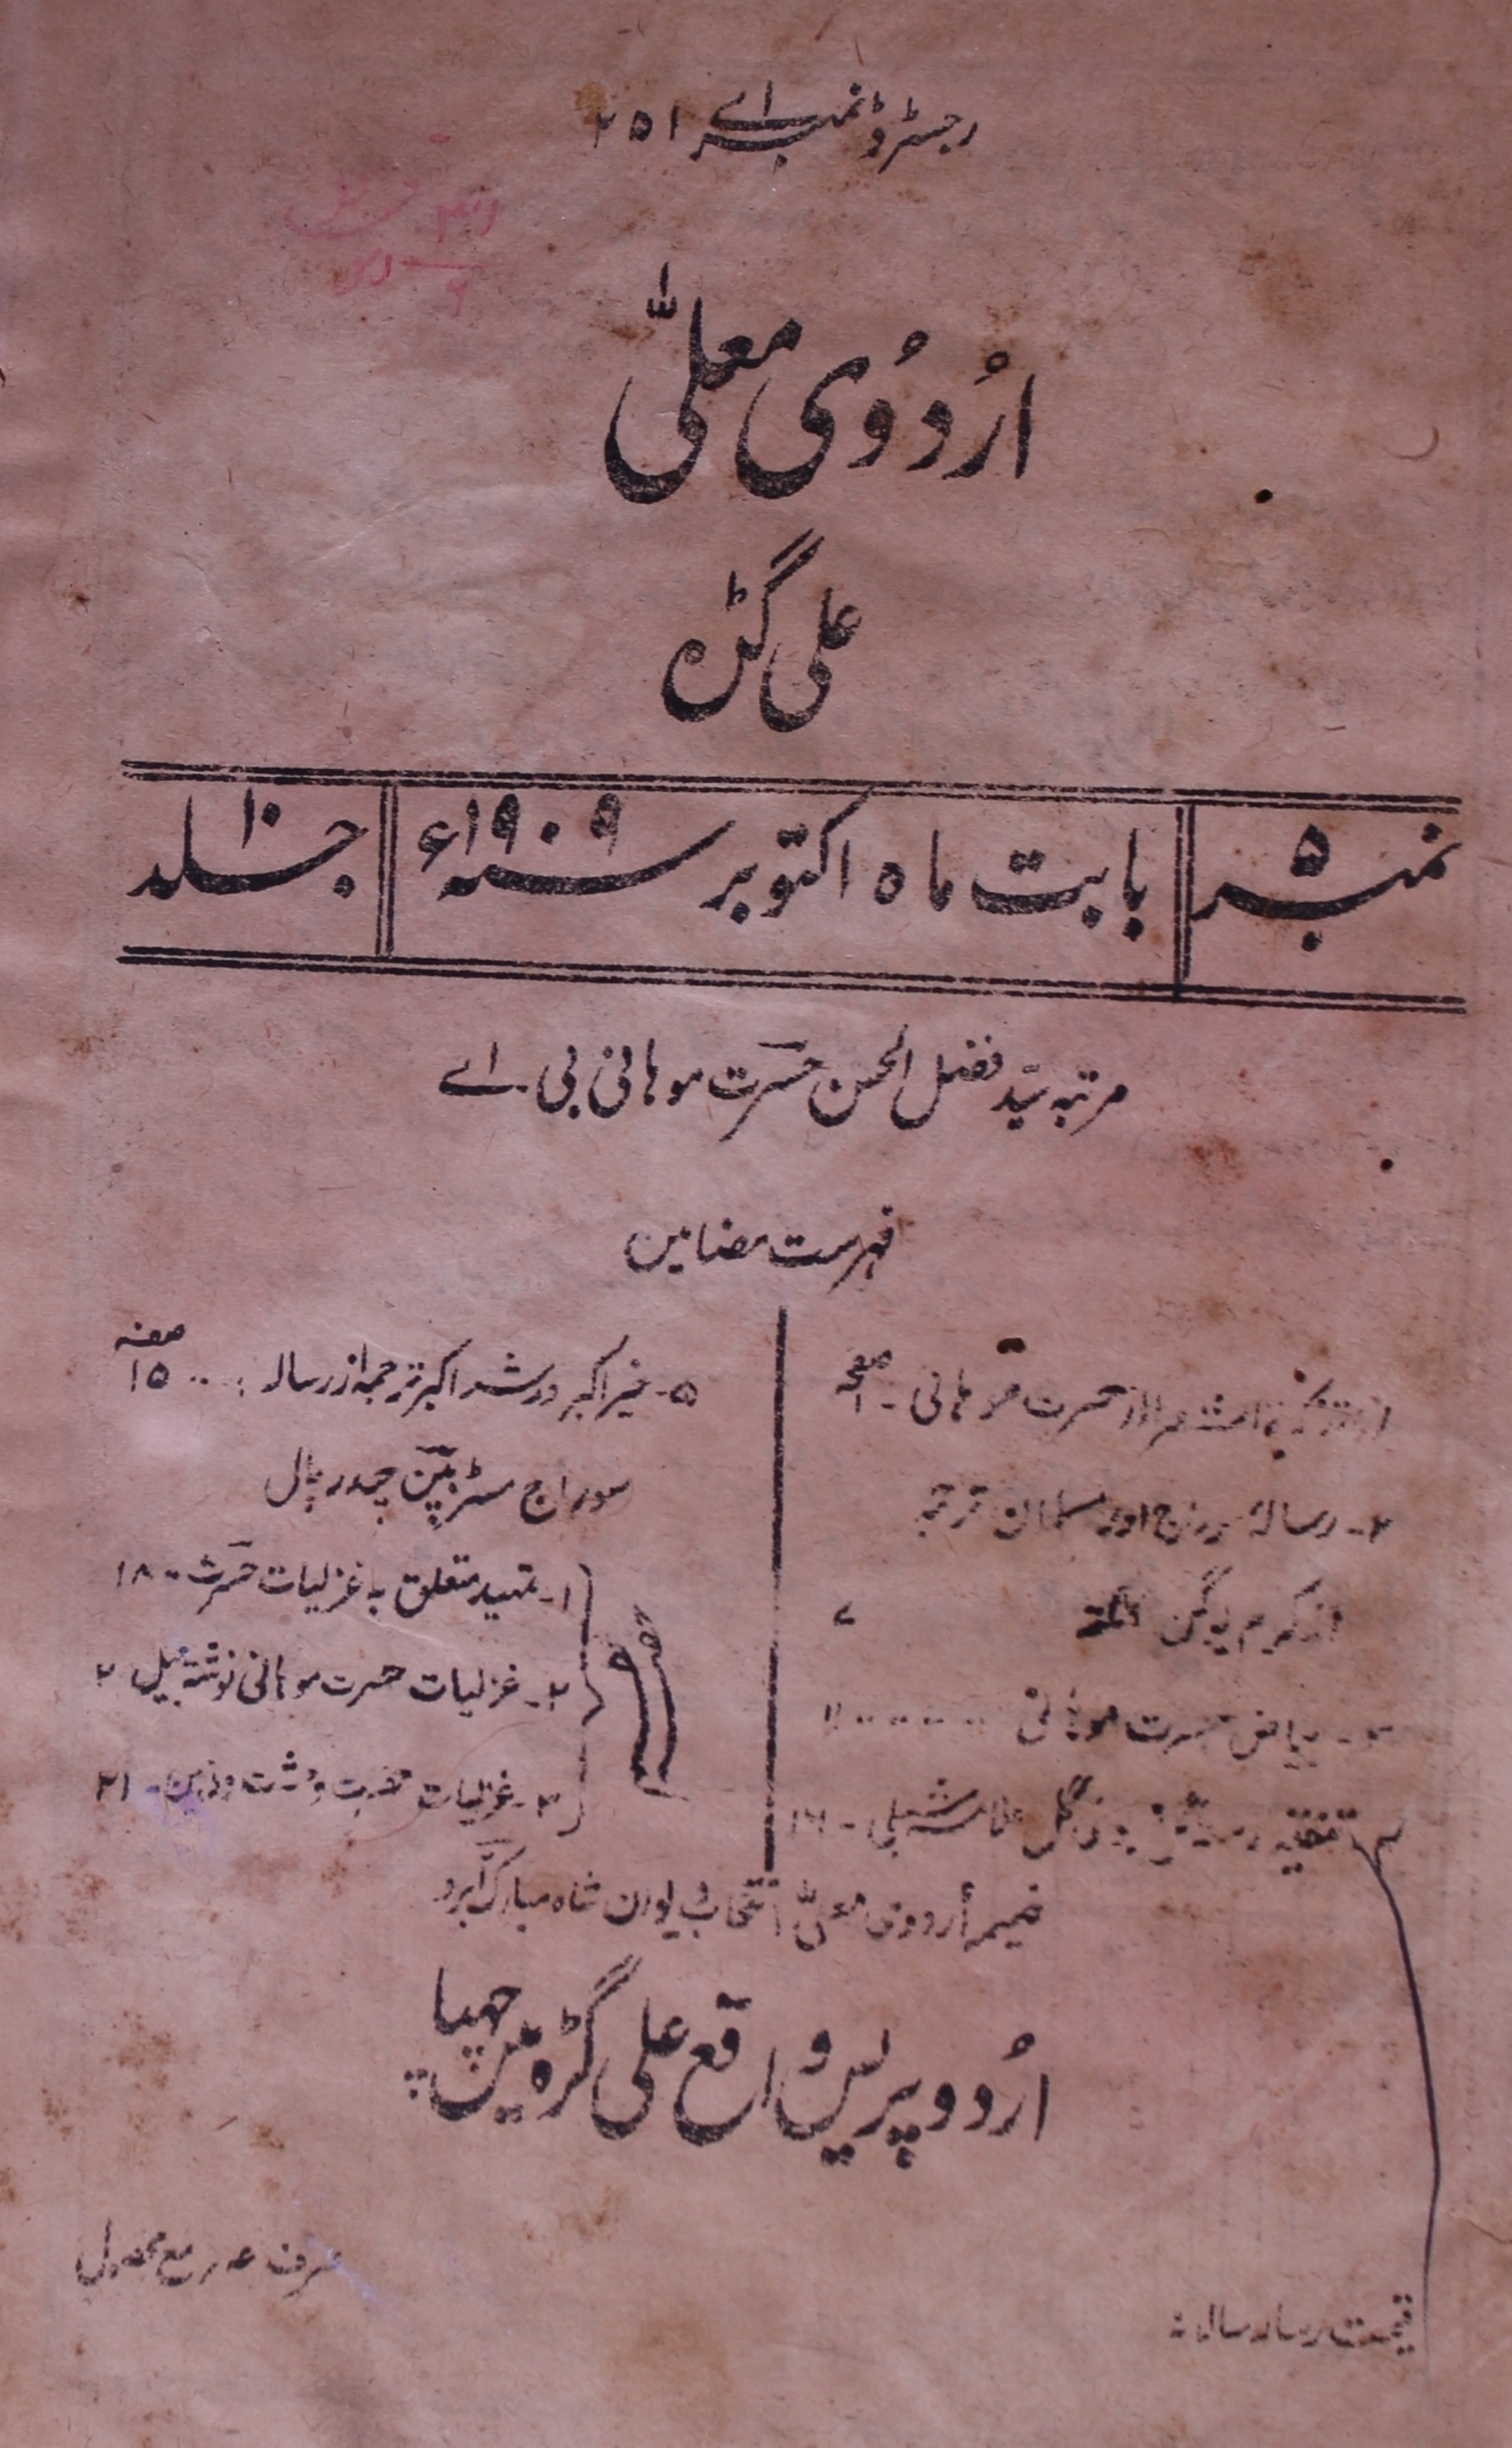 Urdu E Mualla Jild 10 No 5 October 1909